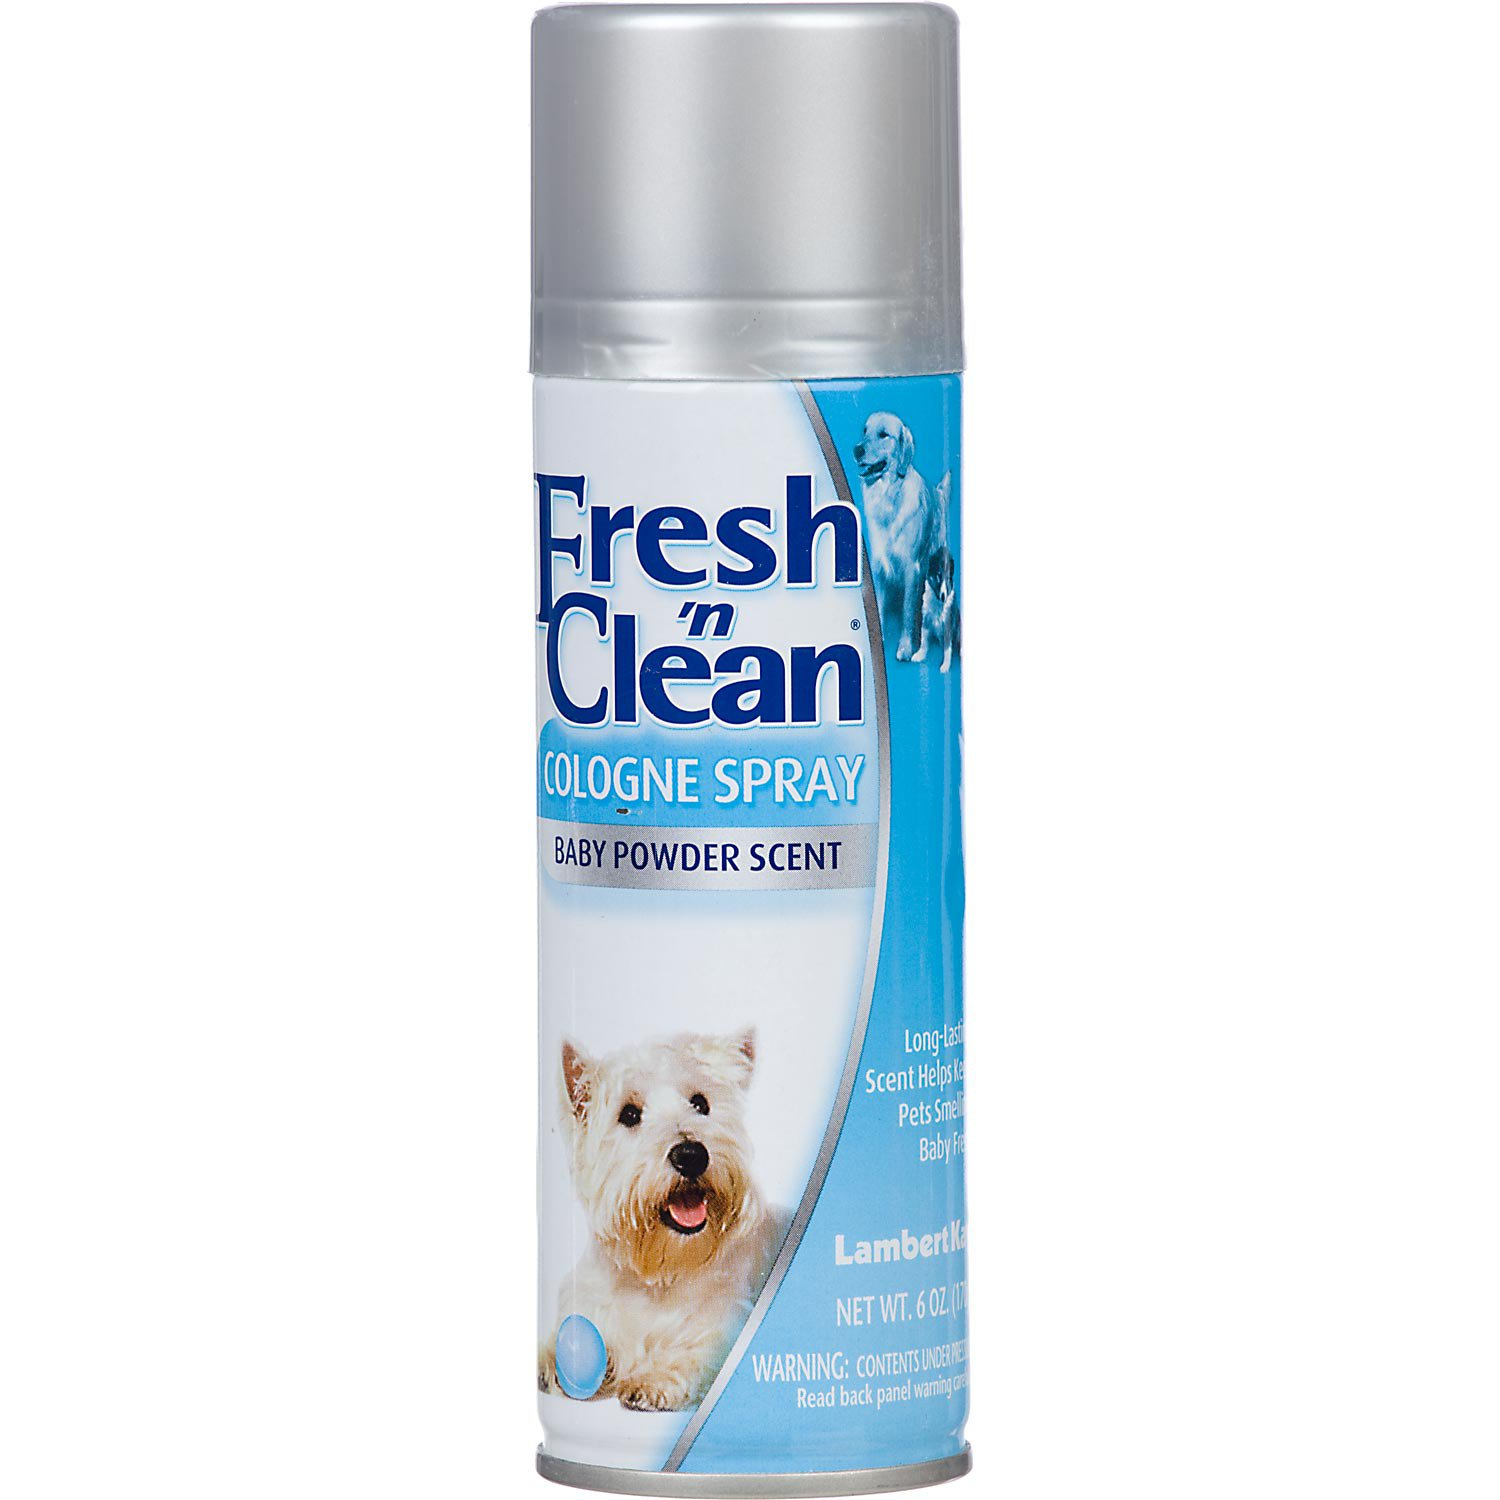 Can You Spray Cologne On Dogs